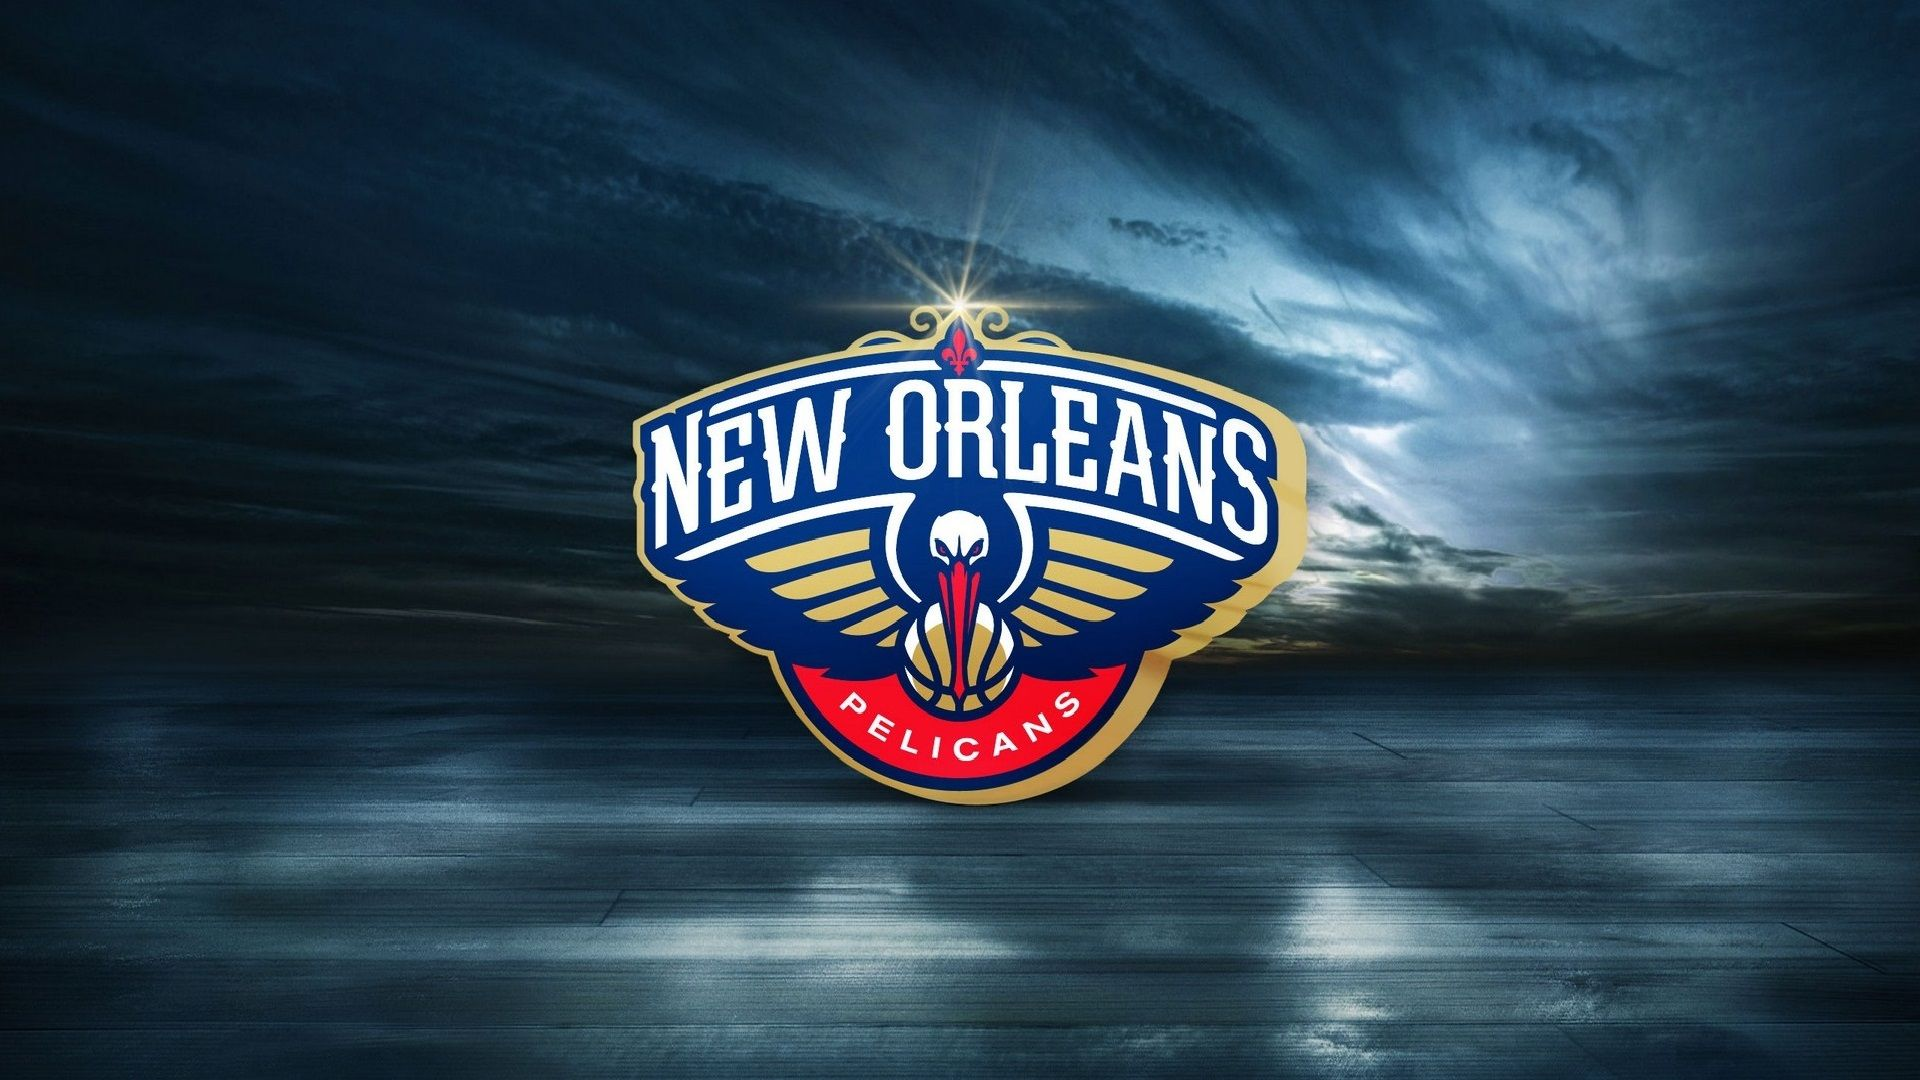 Hd New Orleans Pelicans Backgrounds New Orleans Pelicans